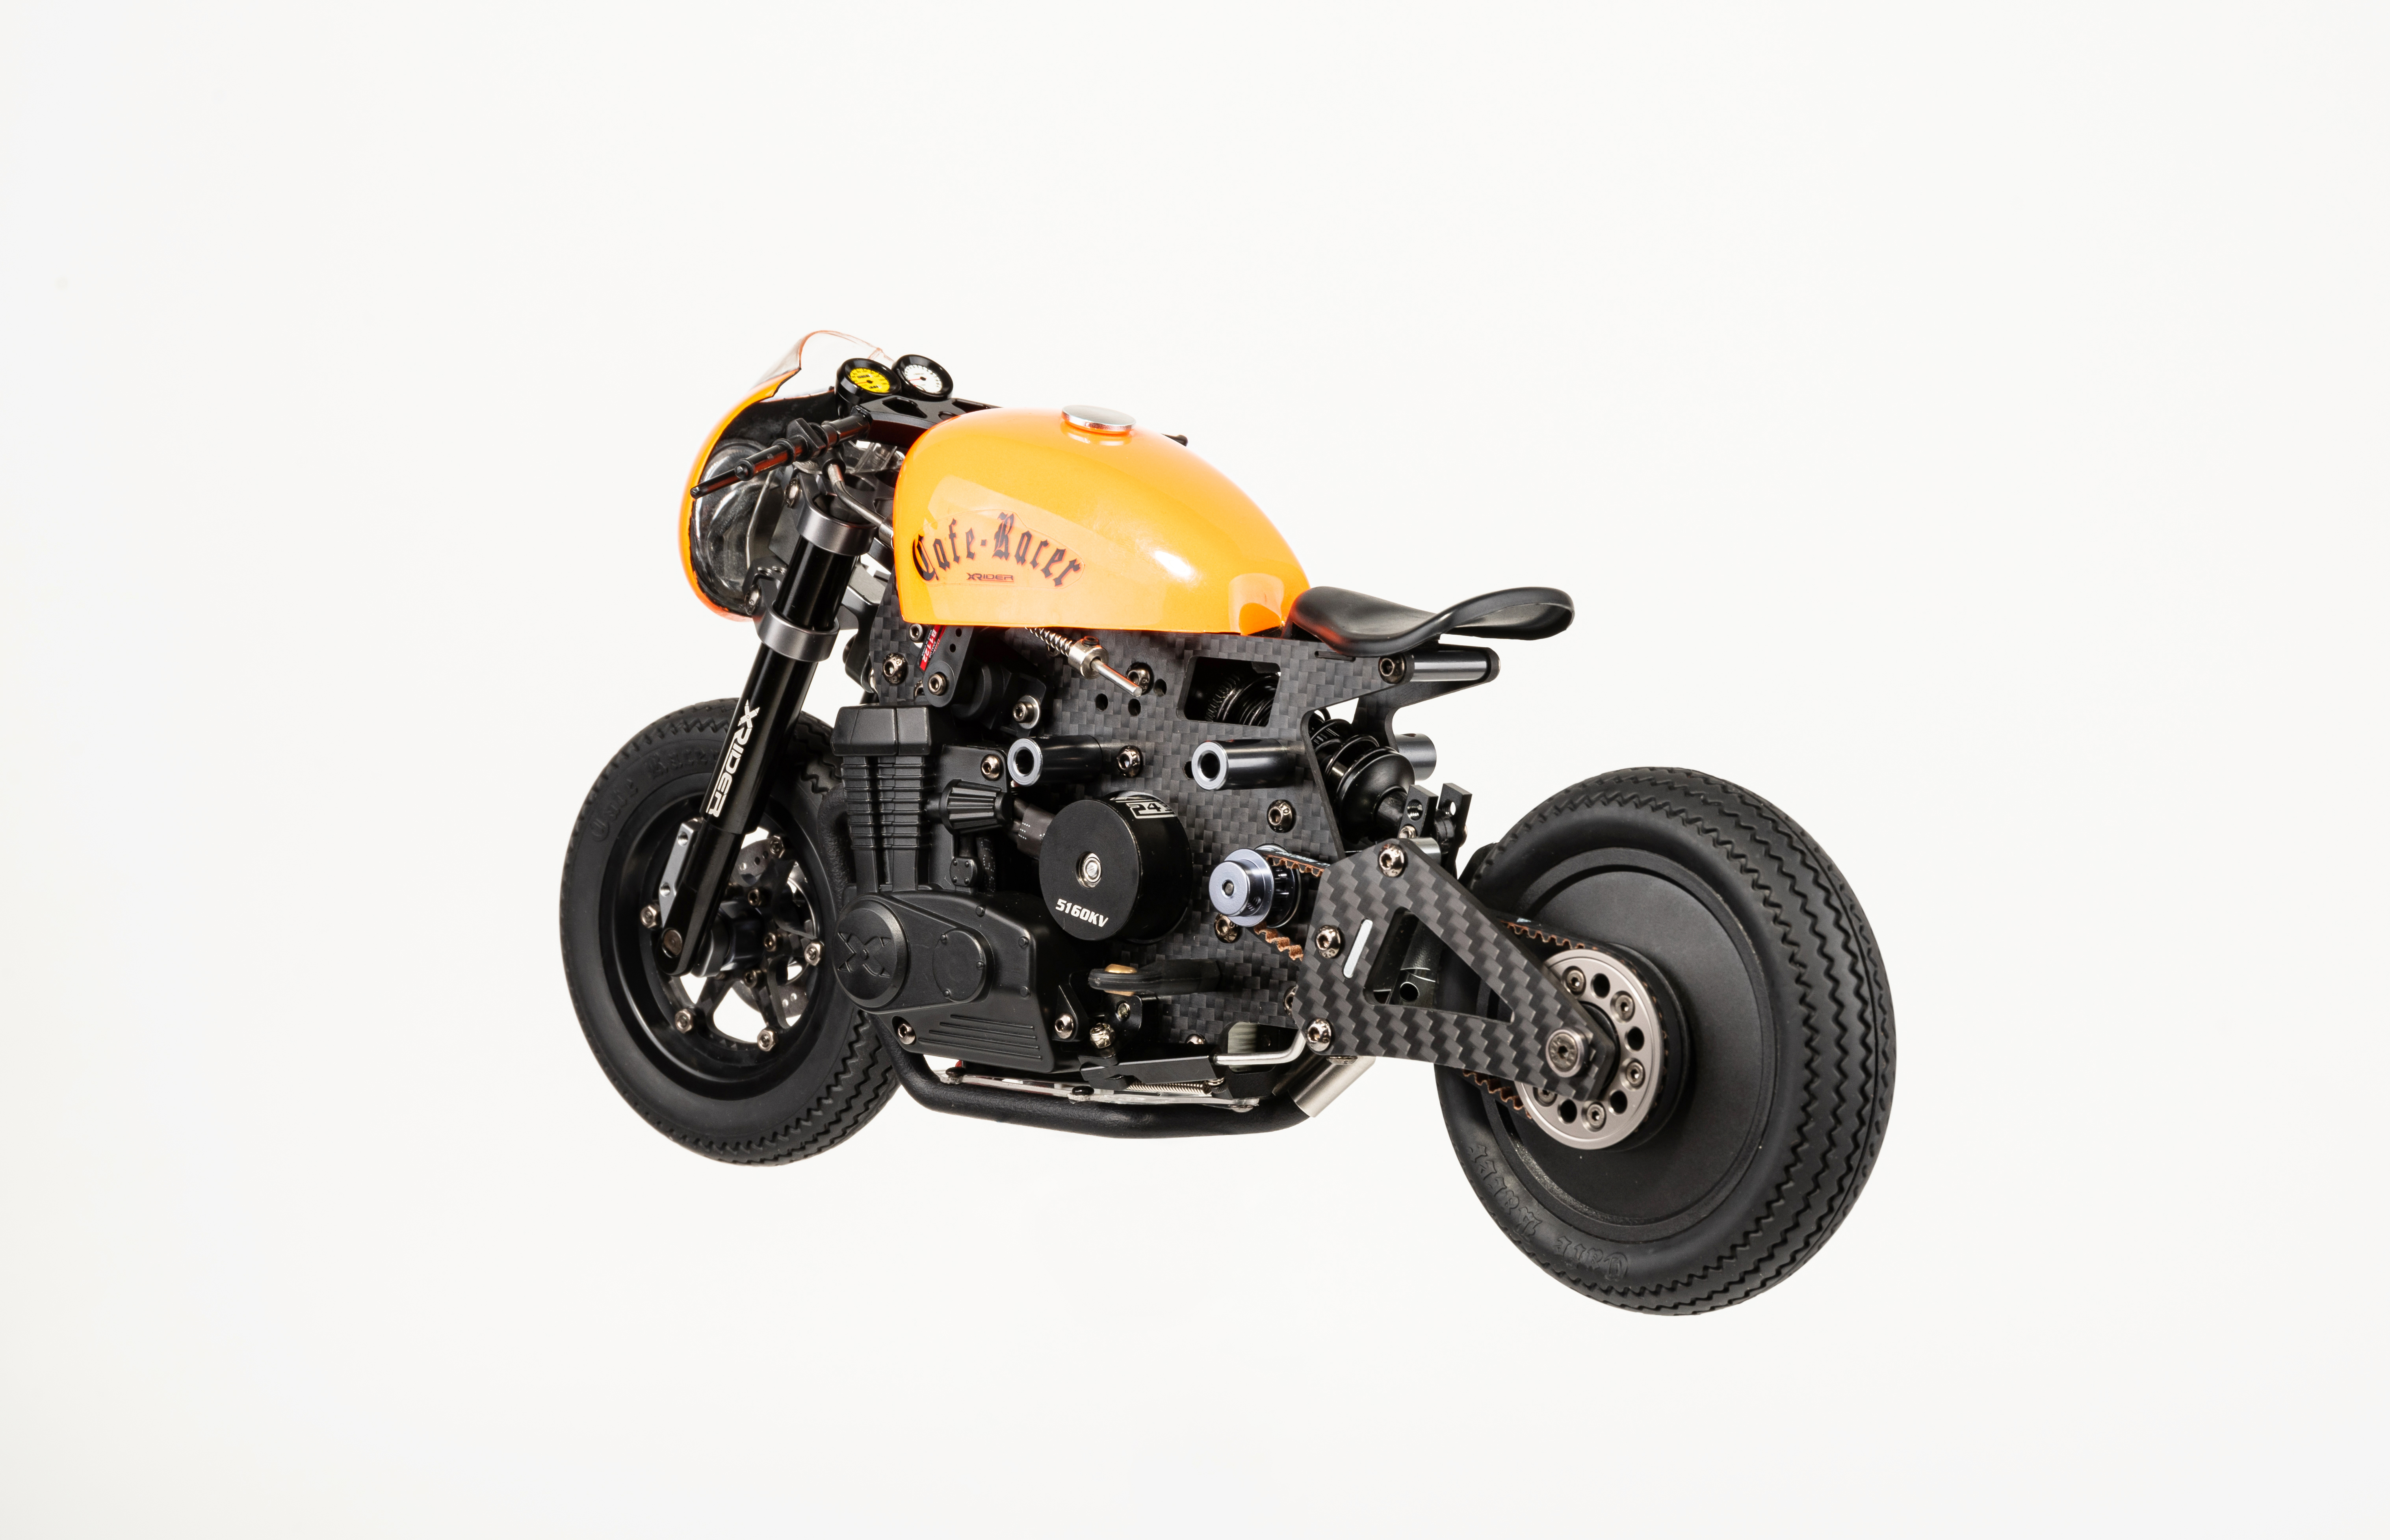 1-8 1-8CAFERACER